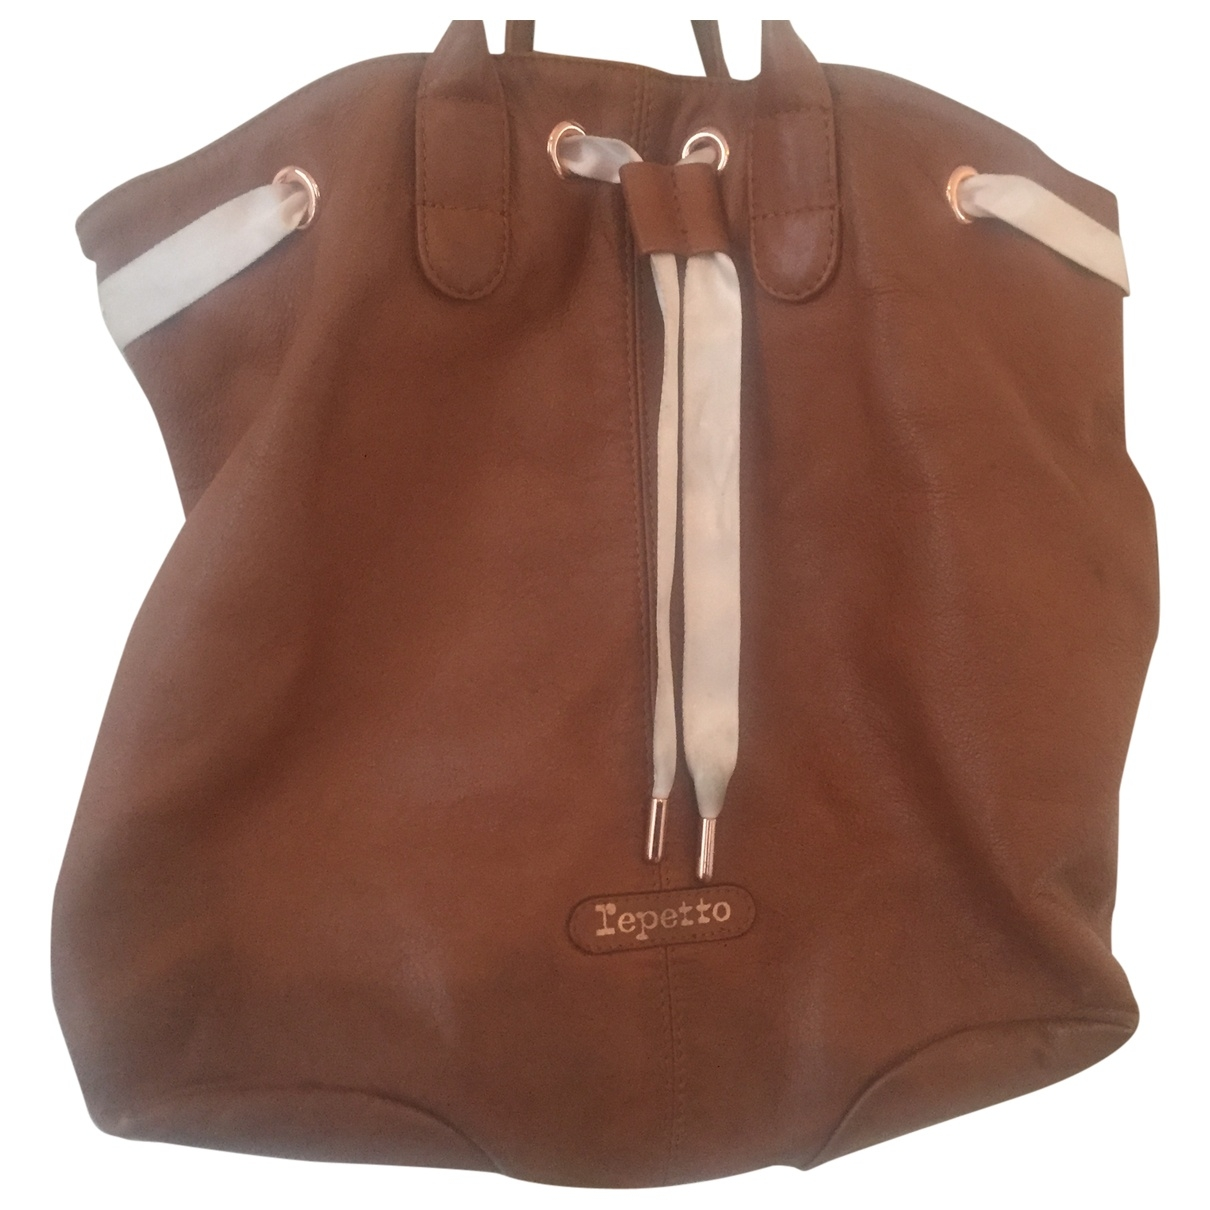 Repetto \N Camel Leather handbag for Women \N